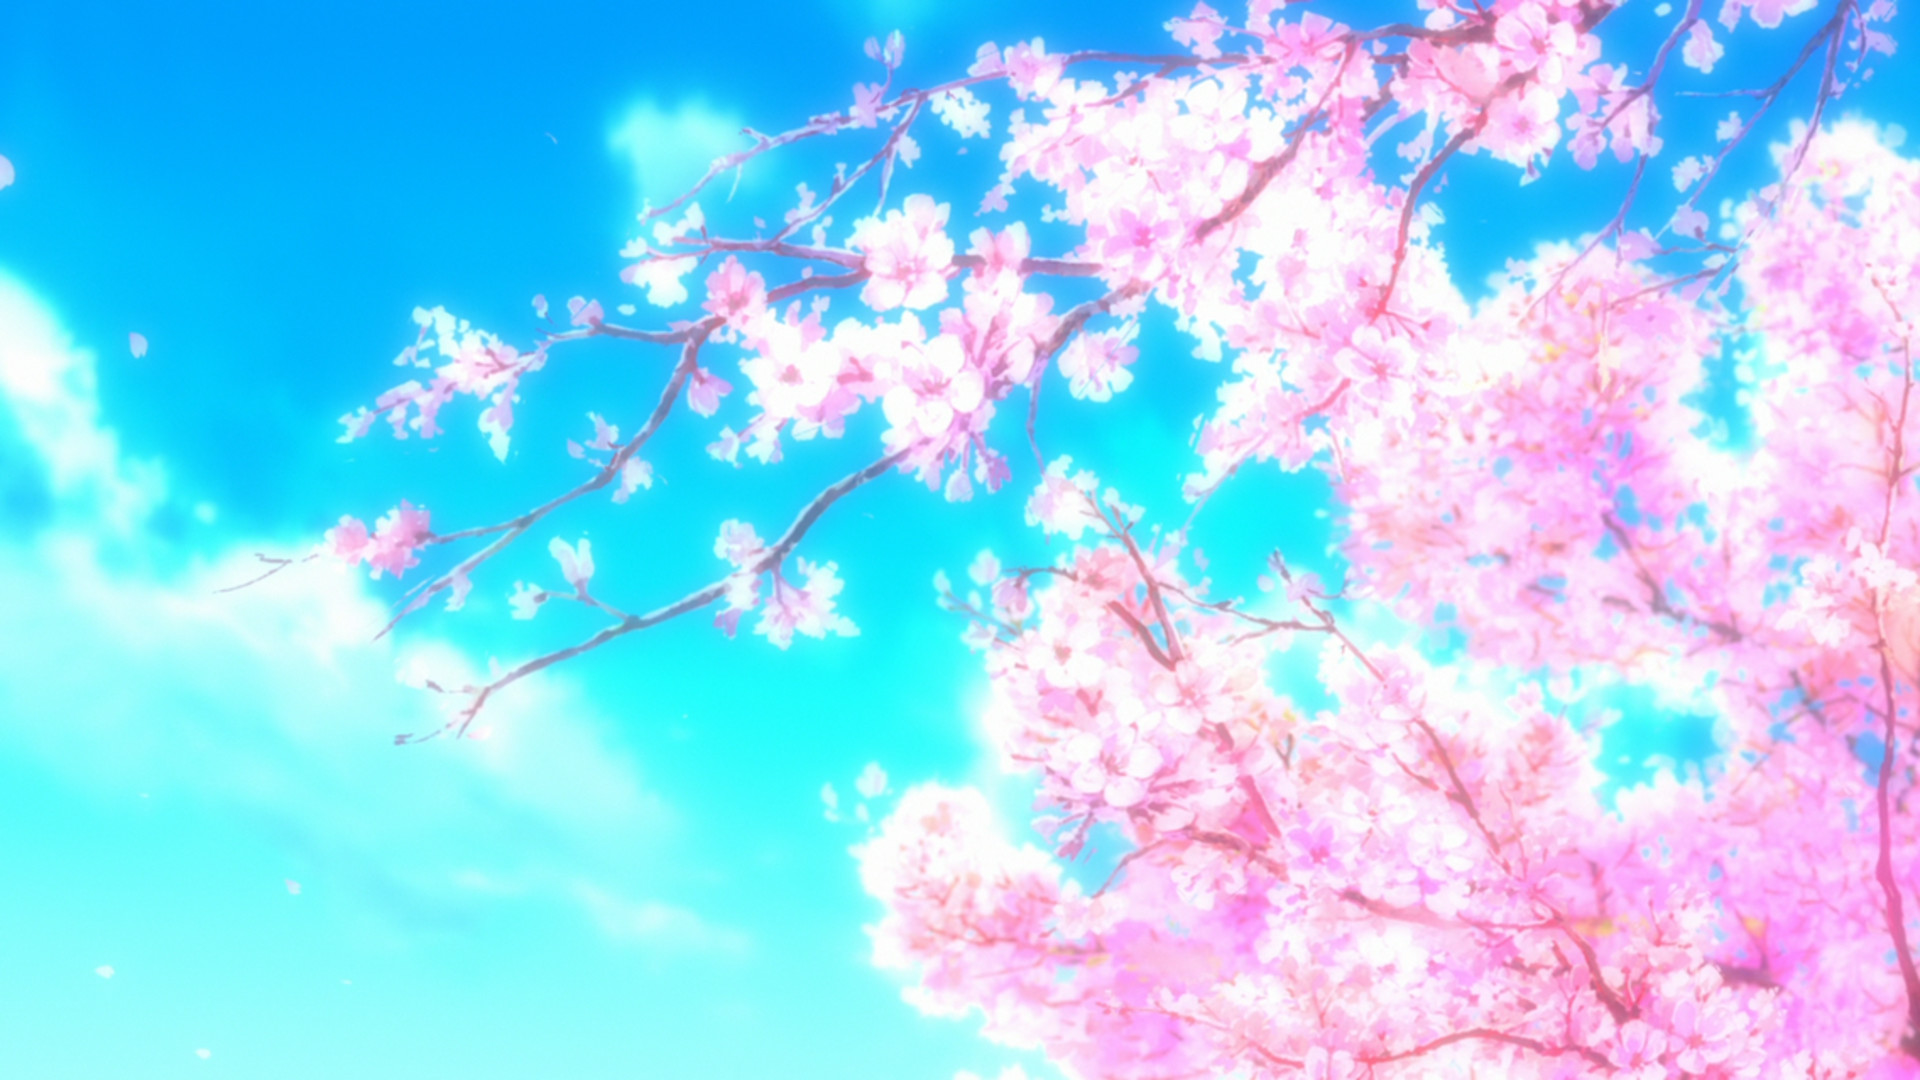 Kawaii background wallpaper 66 images - Anime background for youtube ...